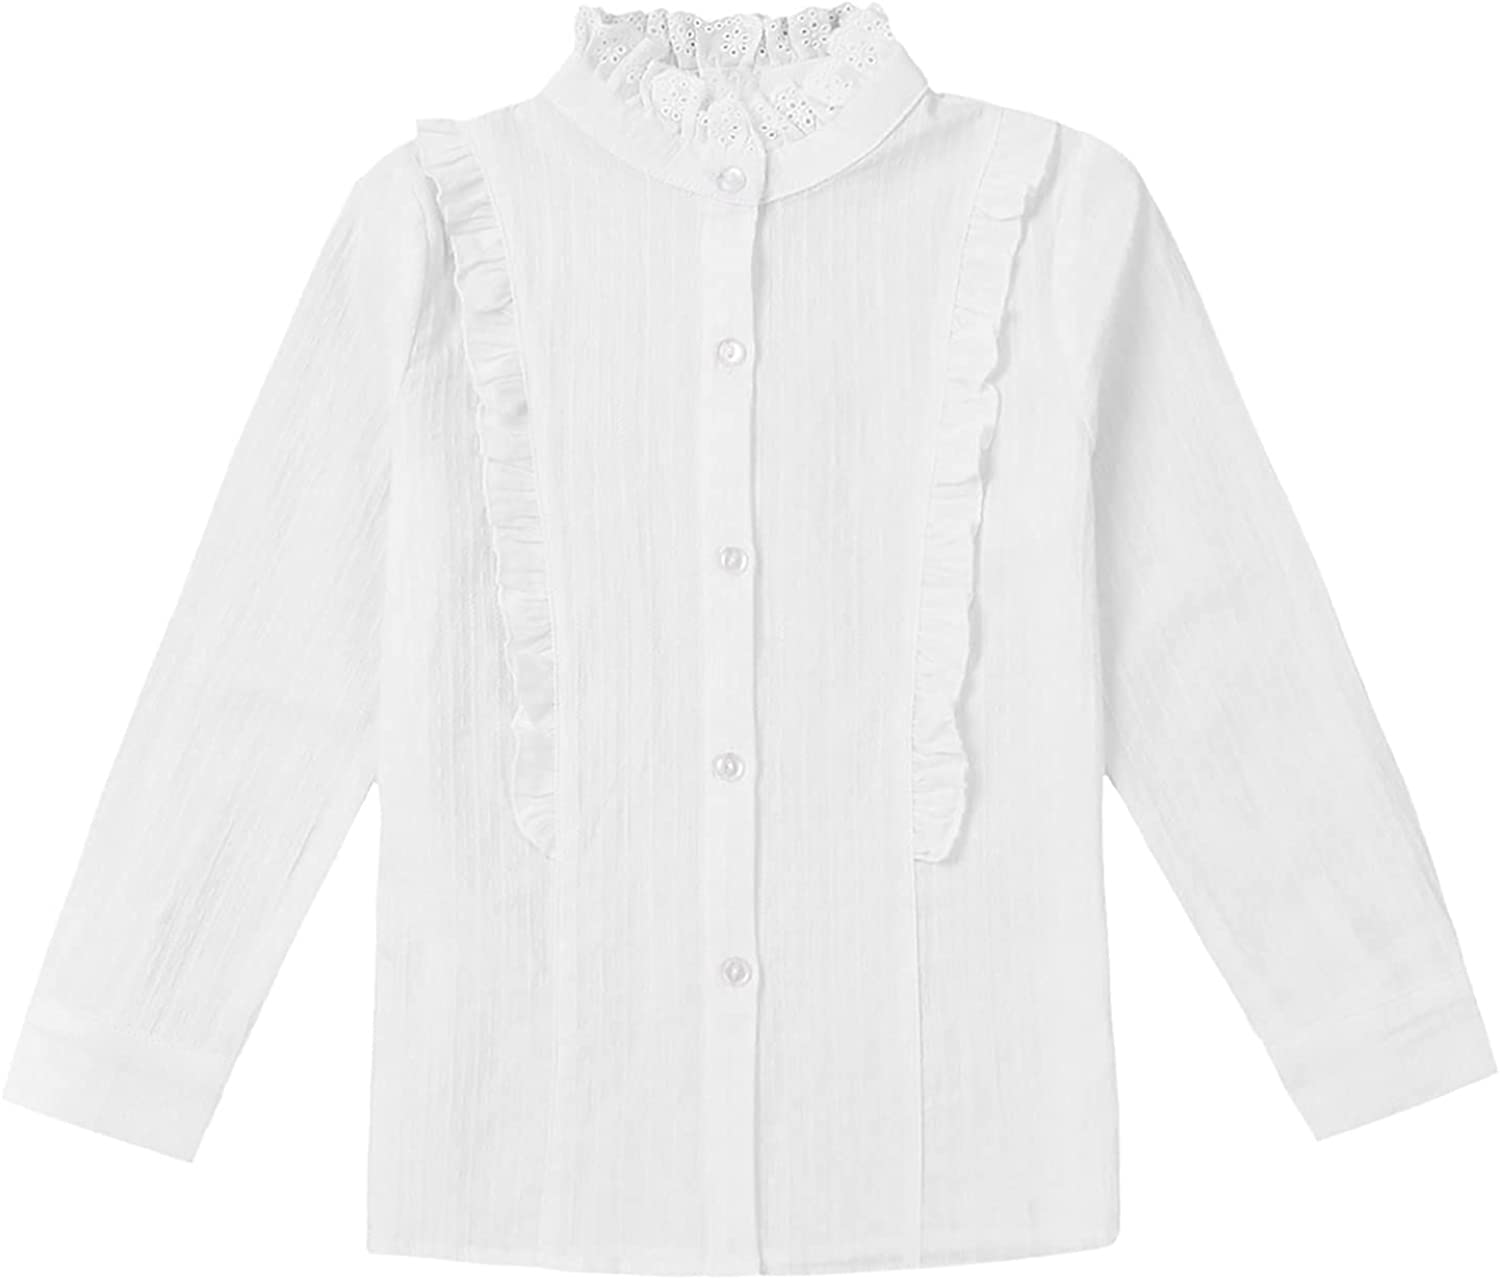 Agoky Kids Girls Ruffle Blouse Long Sleeve Button Down Shirts Solid Color Spring Fall Casual Shirt Tops